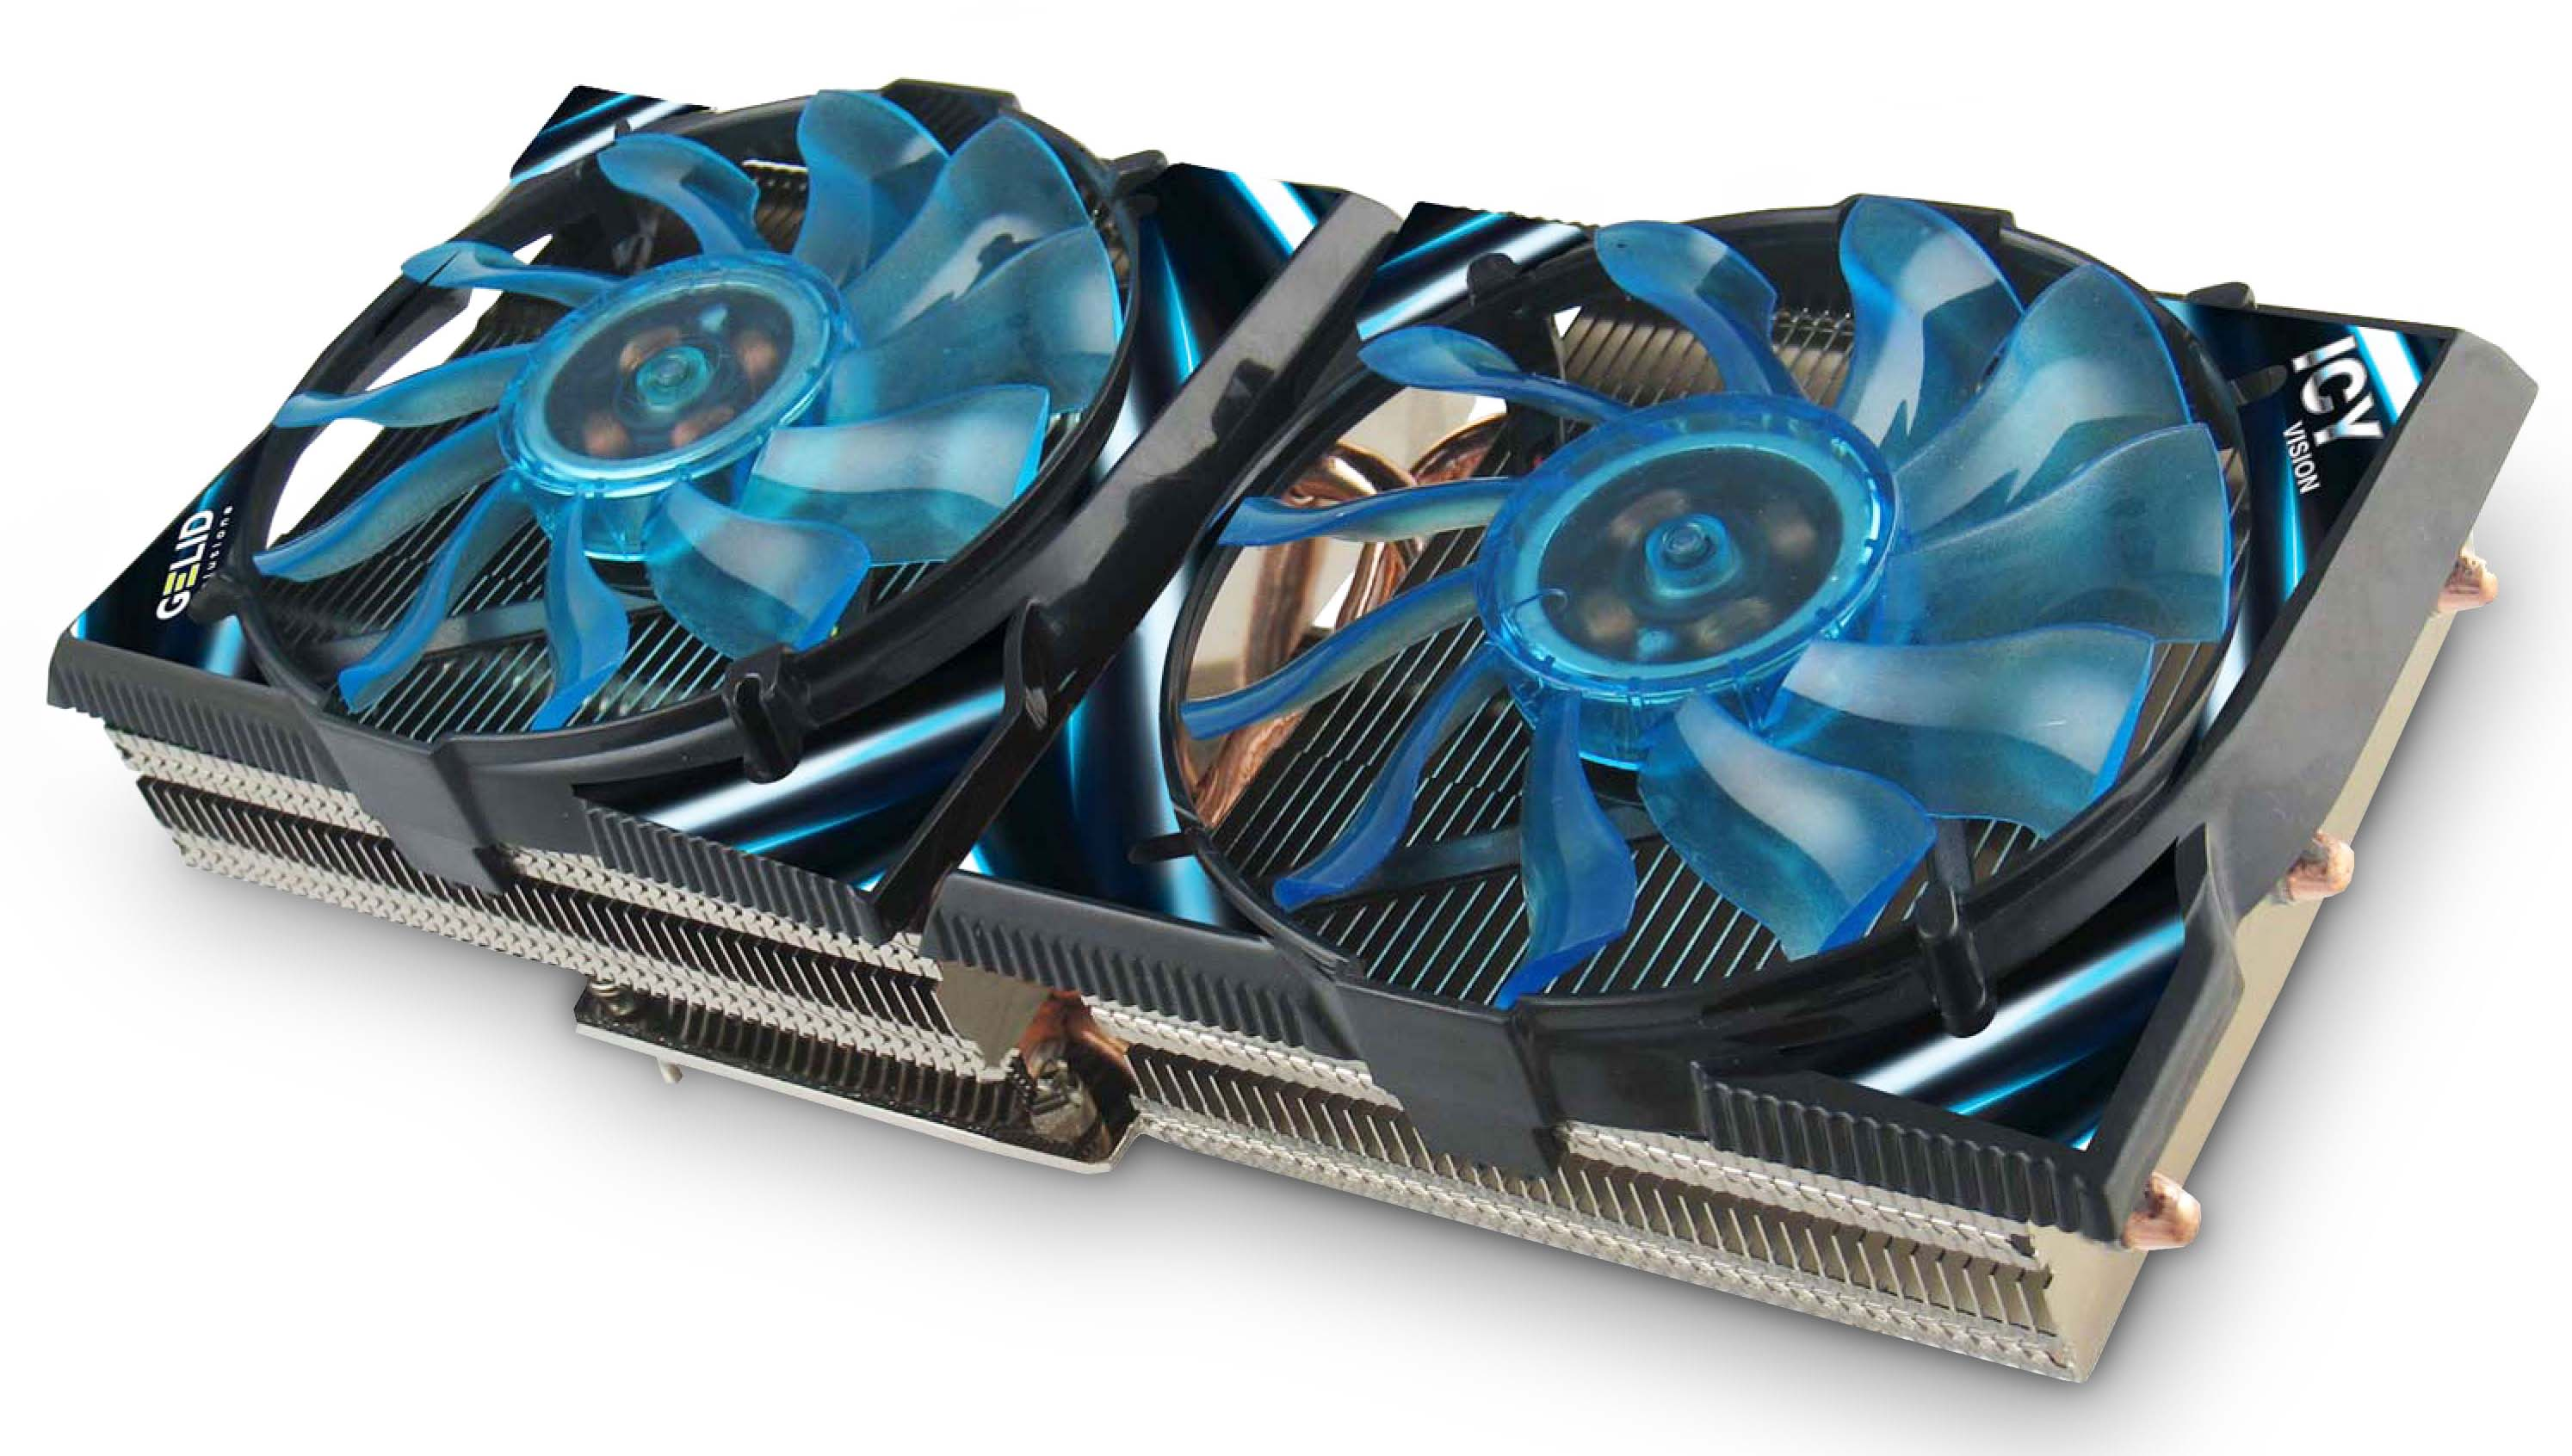 Gelid Icy Vision Rev.2 VGA Cooler for High-end ATI and Nvidia